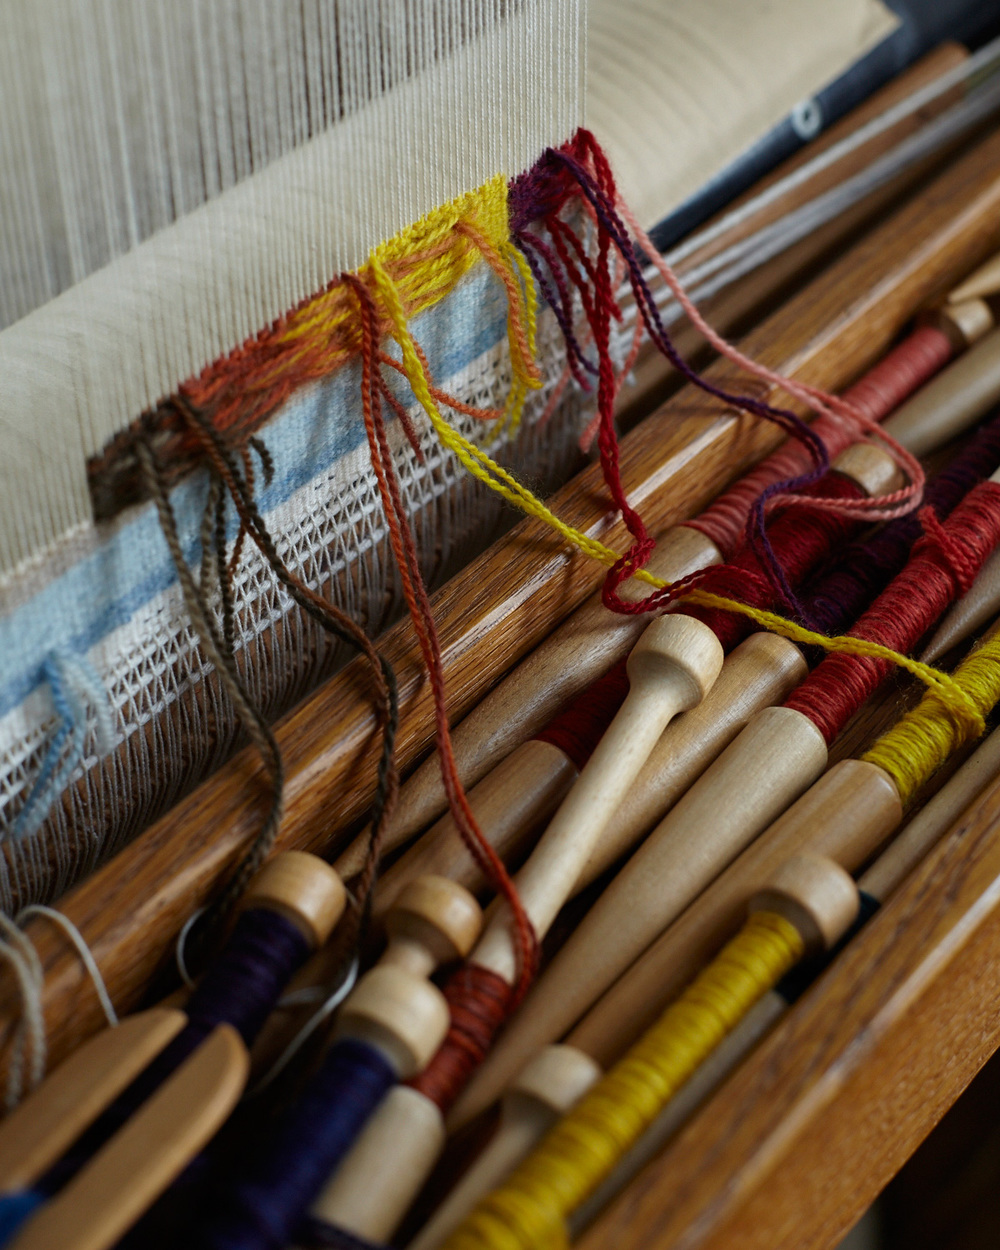 Greg-King-Weaving-Photo-by-Daniel-Dent.jpg